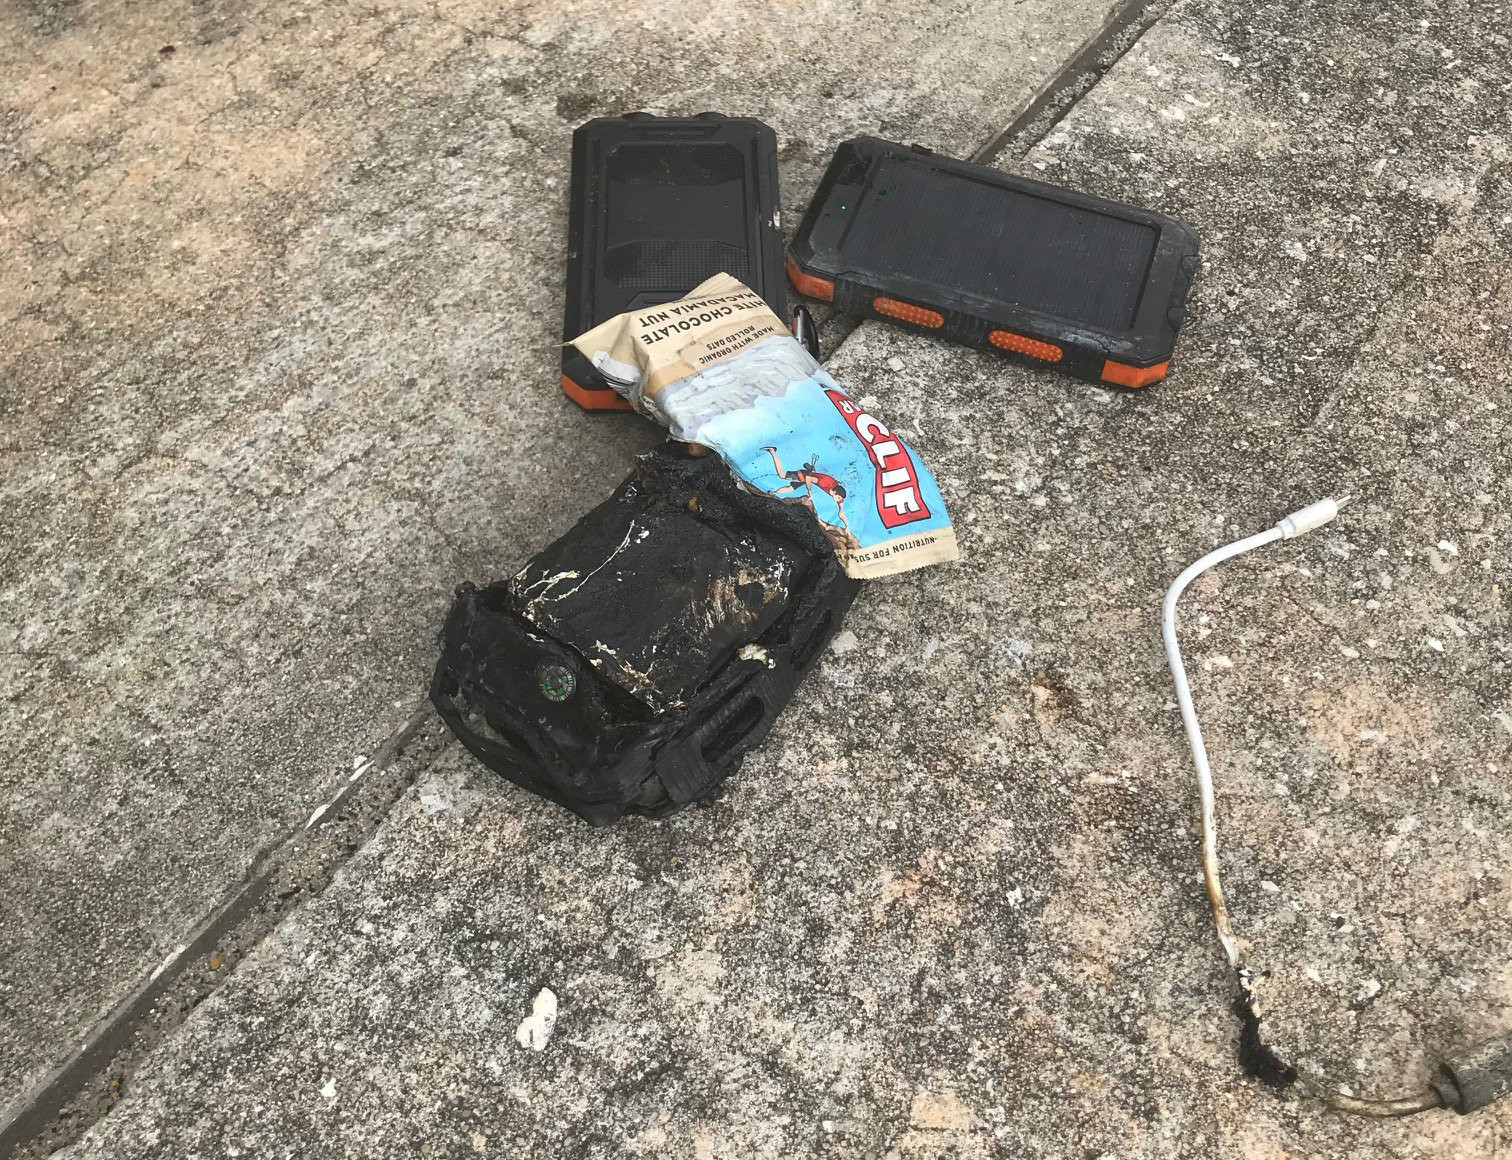 United flight makes emergency landing after cellphone charger catches fire in passenger's bag